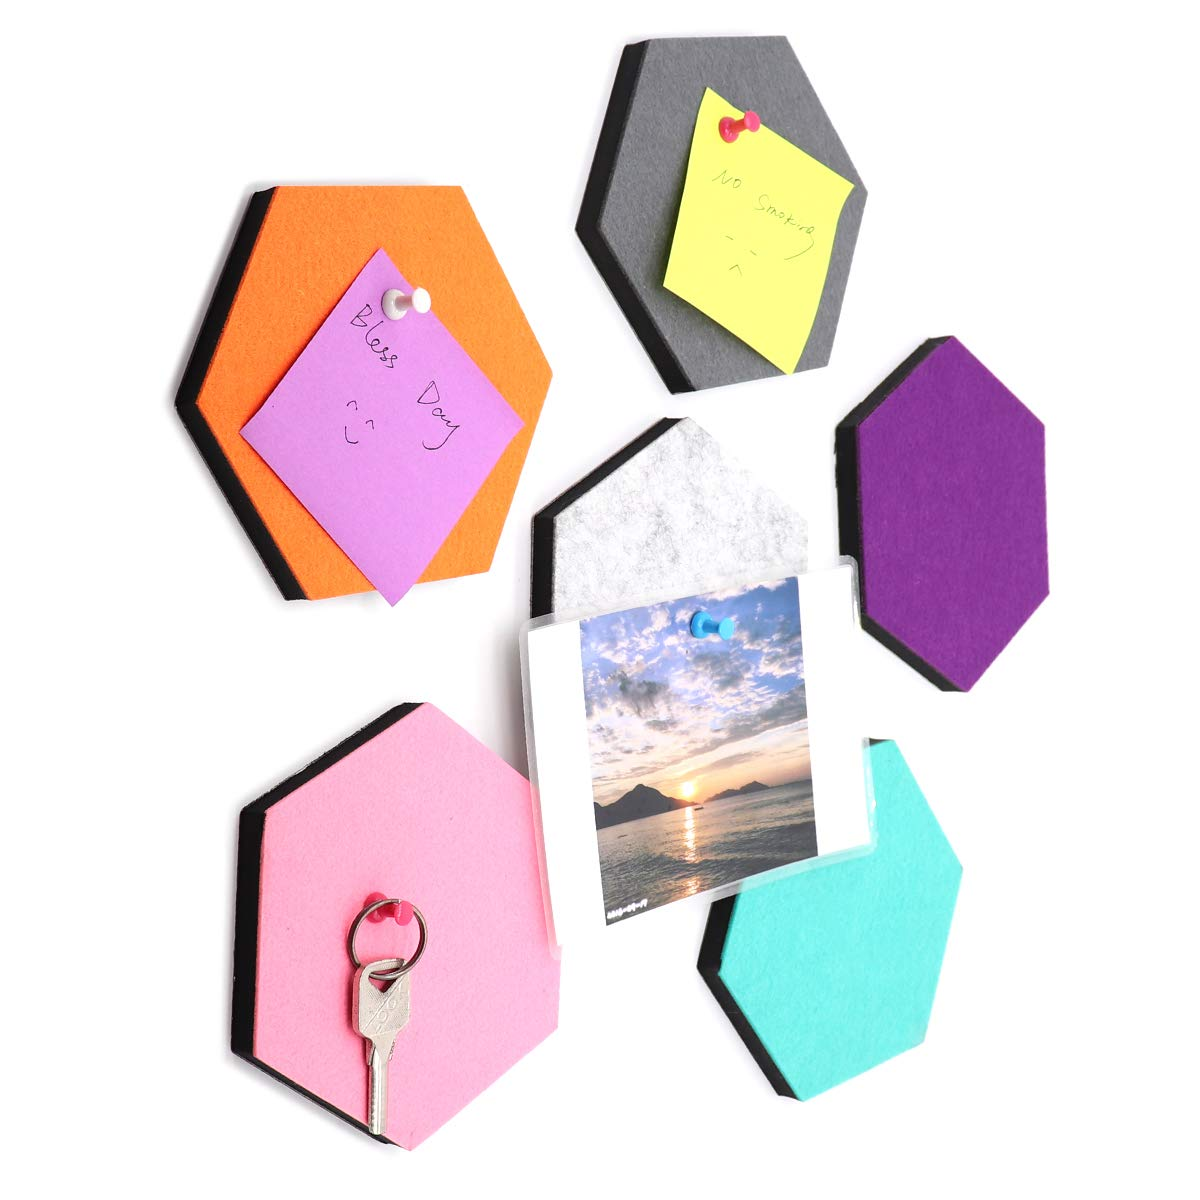 Ekatoo Set of 6 Hexagon Felt Pin Board Self Adhesive Bulletin Memo Photo Cork Boards Colorful Foam Wall Decorative Tiles with 6 Pushpins - 5.5 x 5 x 0.5 inches